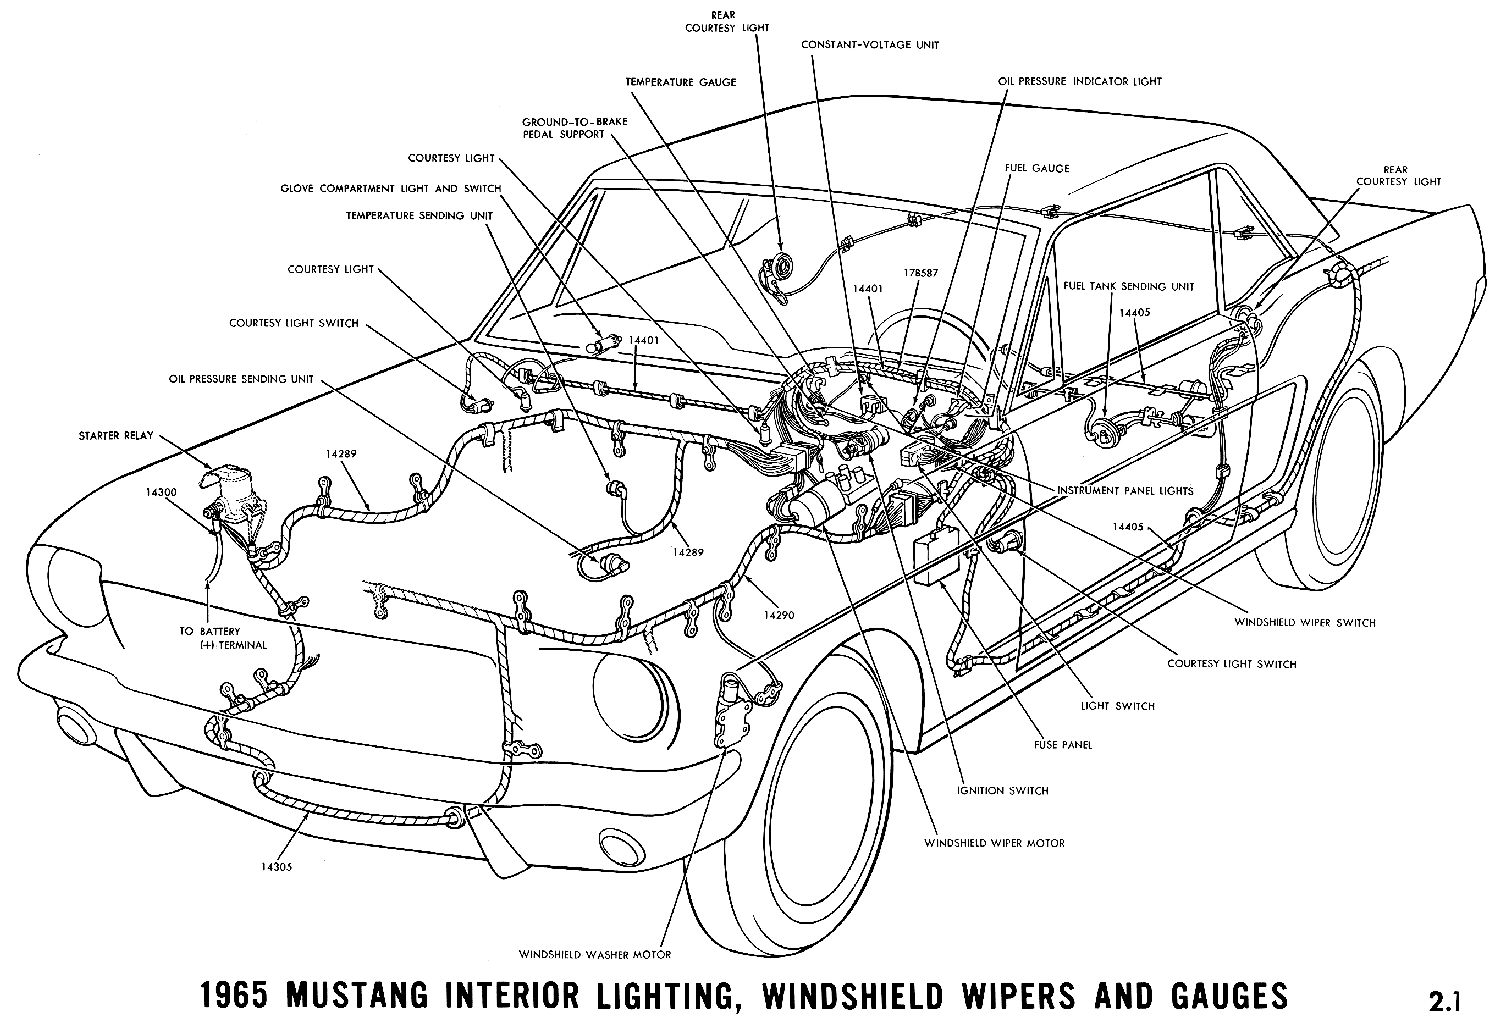 1965f 1965 mustang wiring diagrams average joe restoration best wiring harness for 1967 mustang at soozxer.org